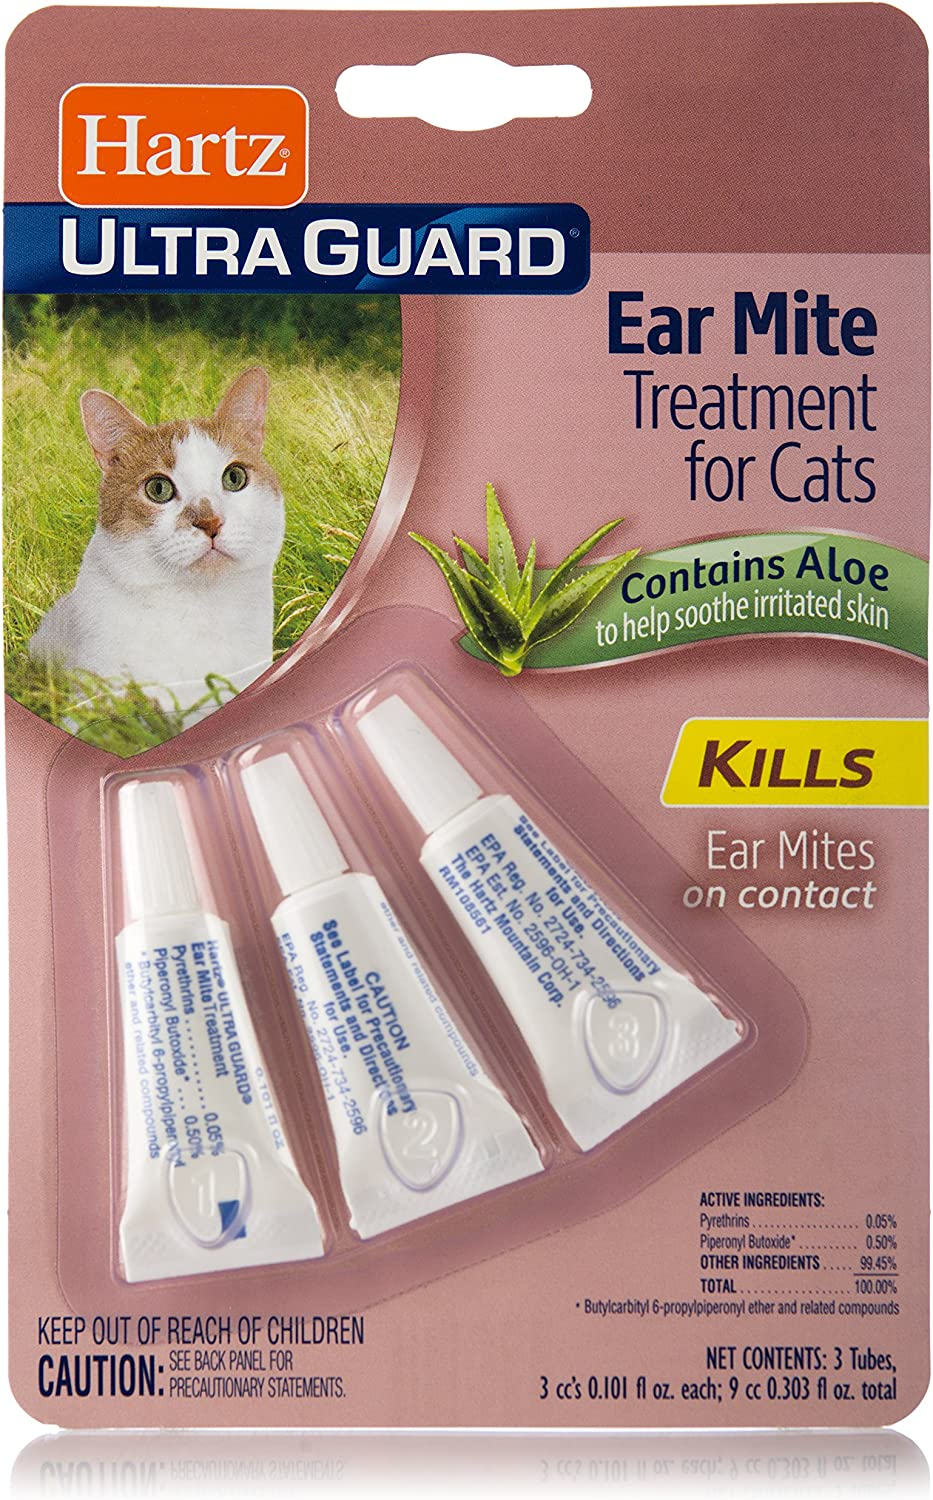 Hartz UltraGuard Ear Mite Treatment for Cats: Pet Supplies